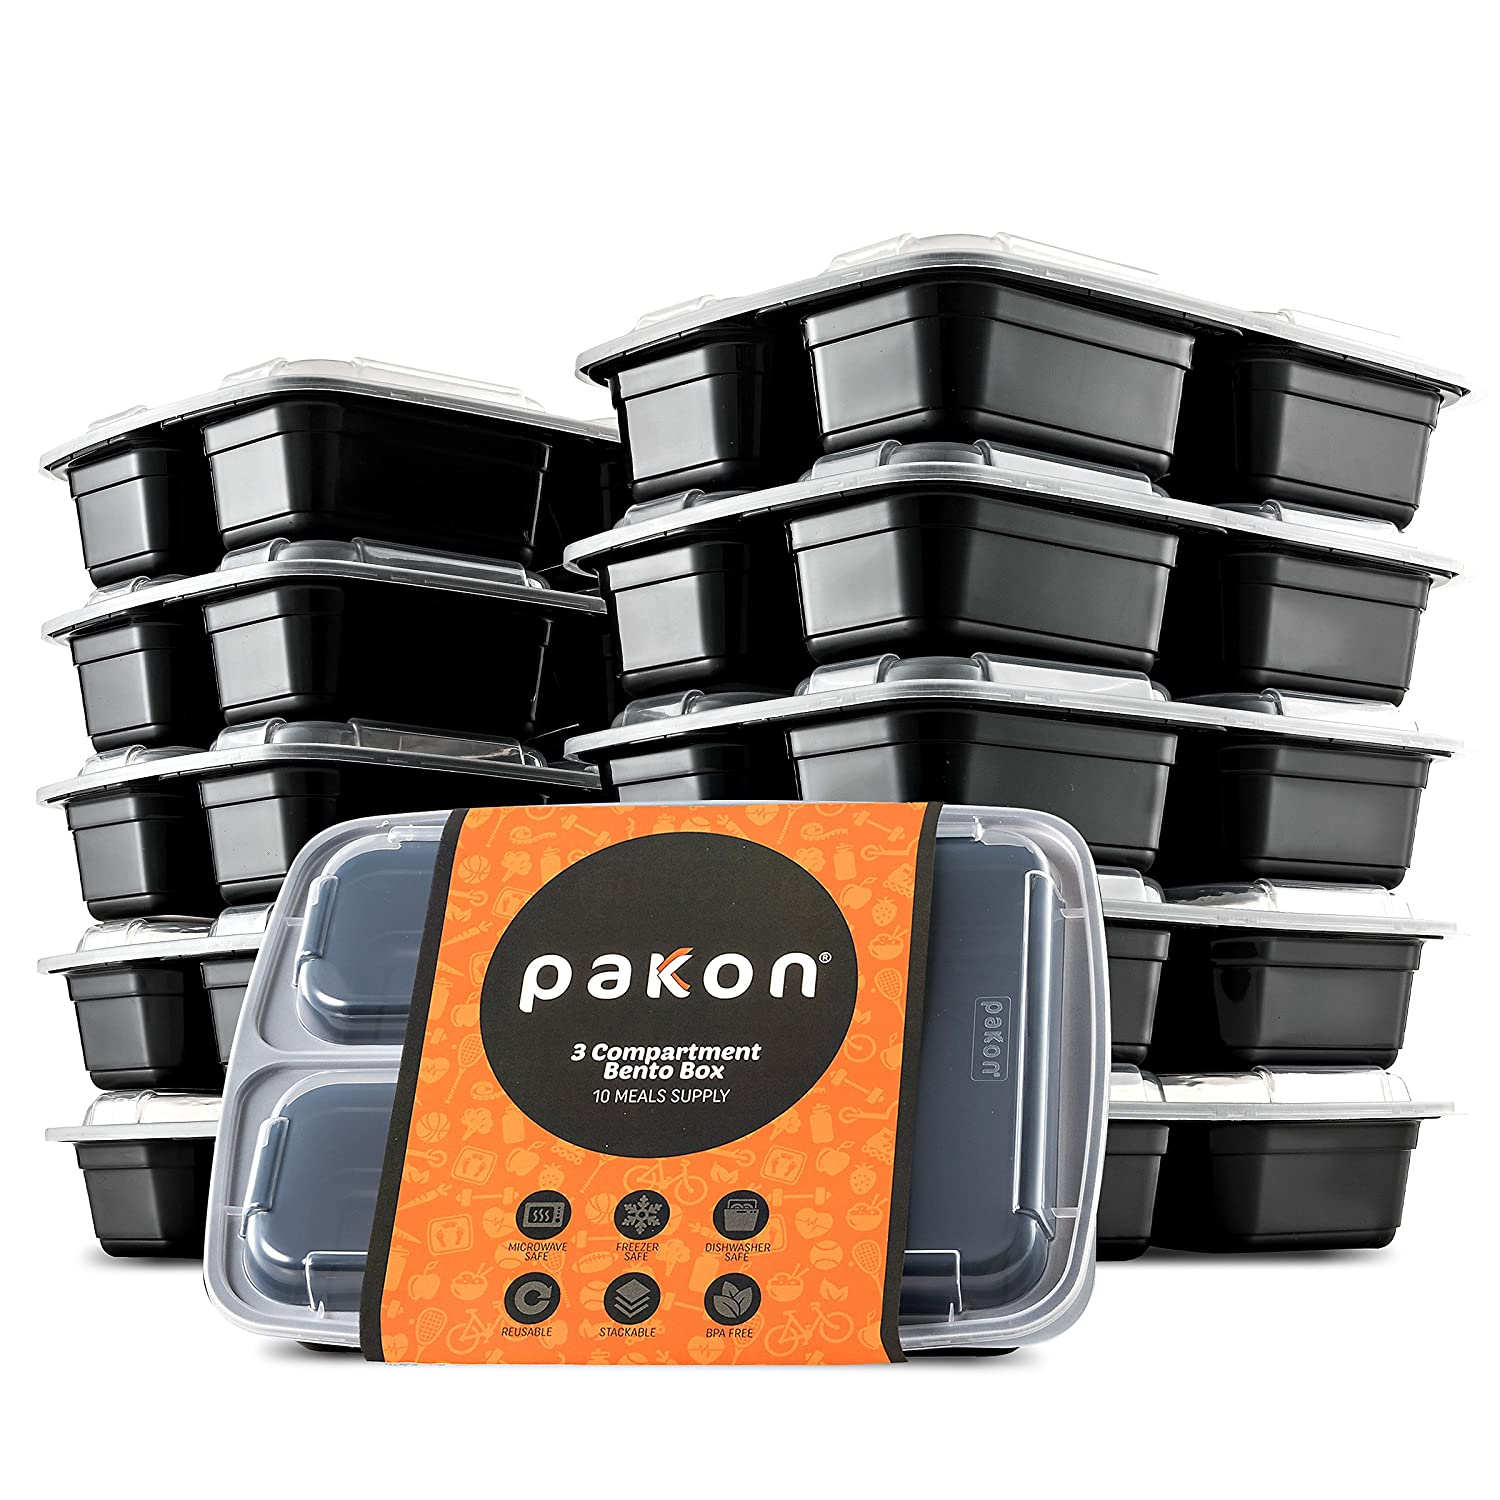 Pakkon 3 Compartment Bento Box with Airtight Lid, 10 Pack Pakkon-3x10